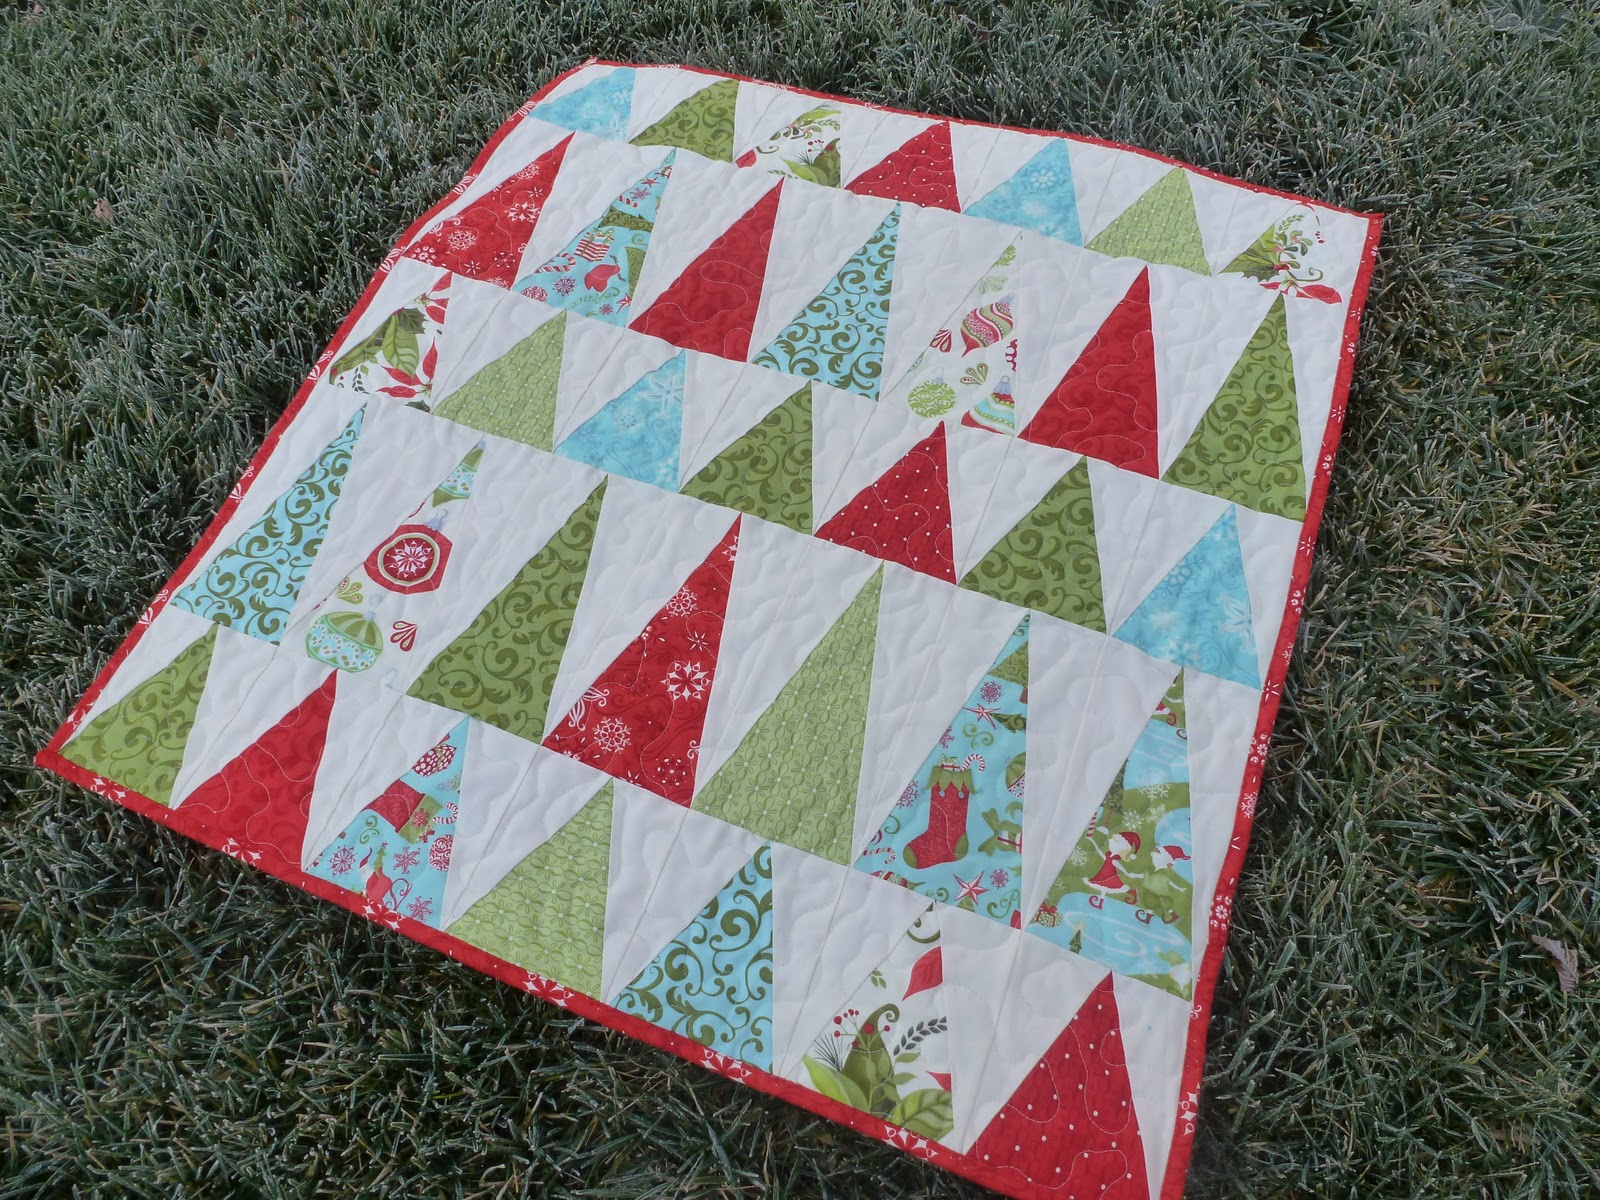 Fishing Line Christmas Tree Patterns http://www.genxquilters.com/2011/12/christmas-trees-quilt.html